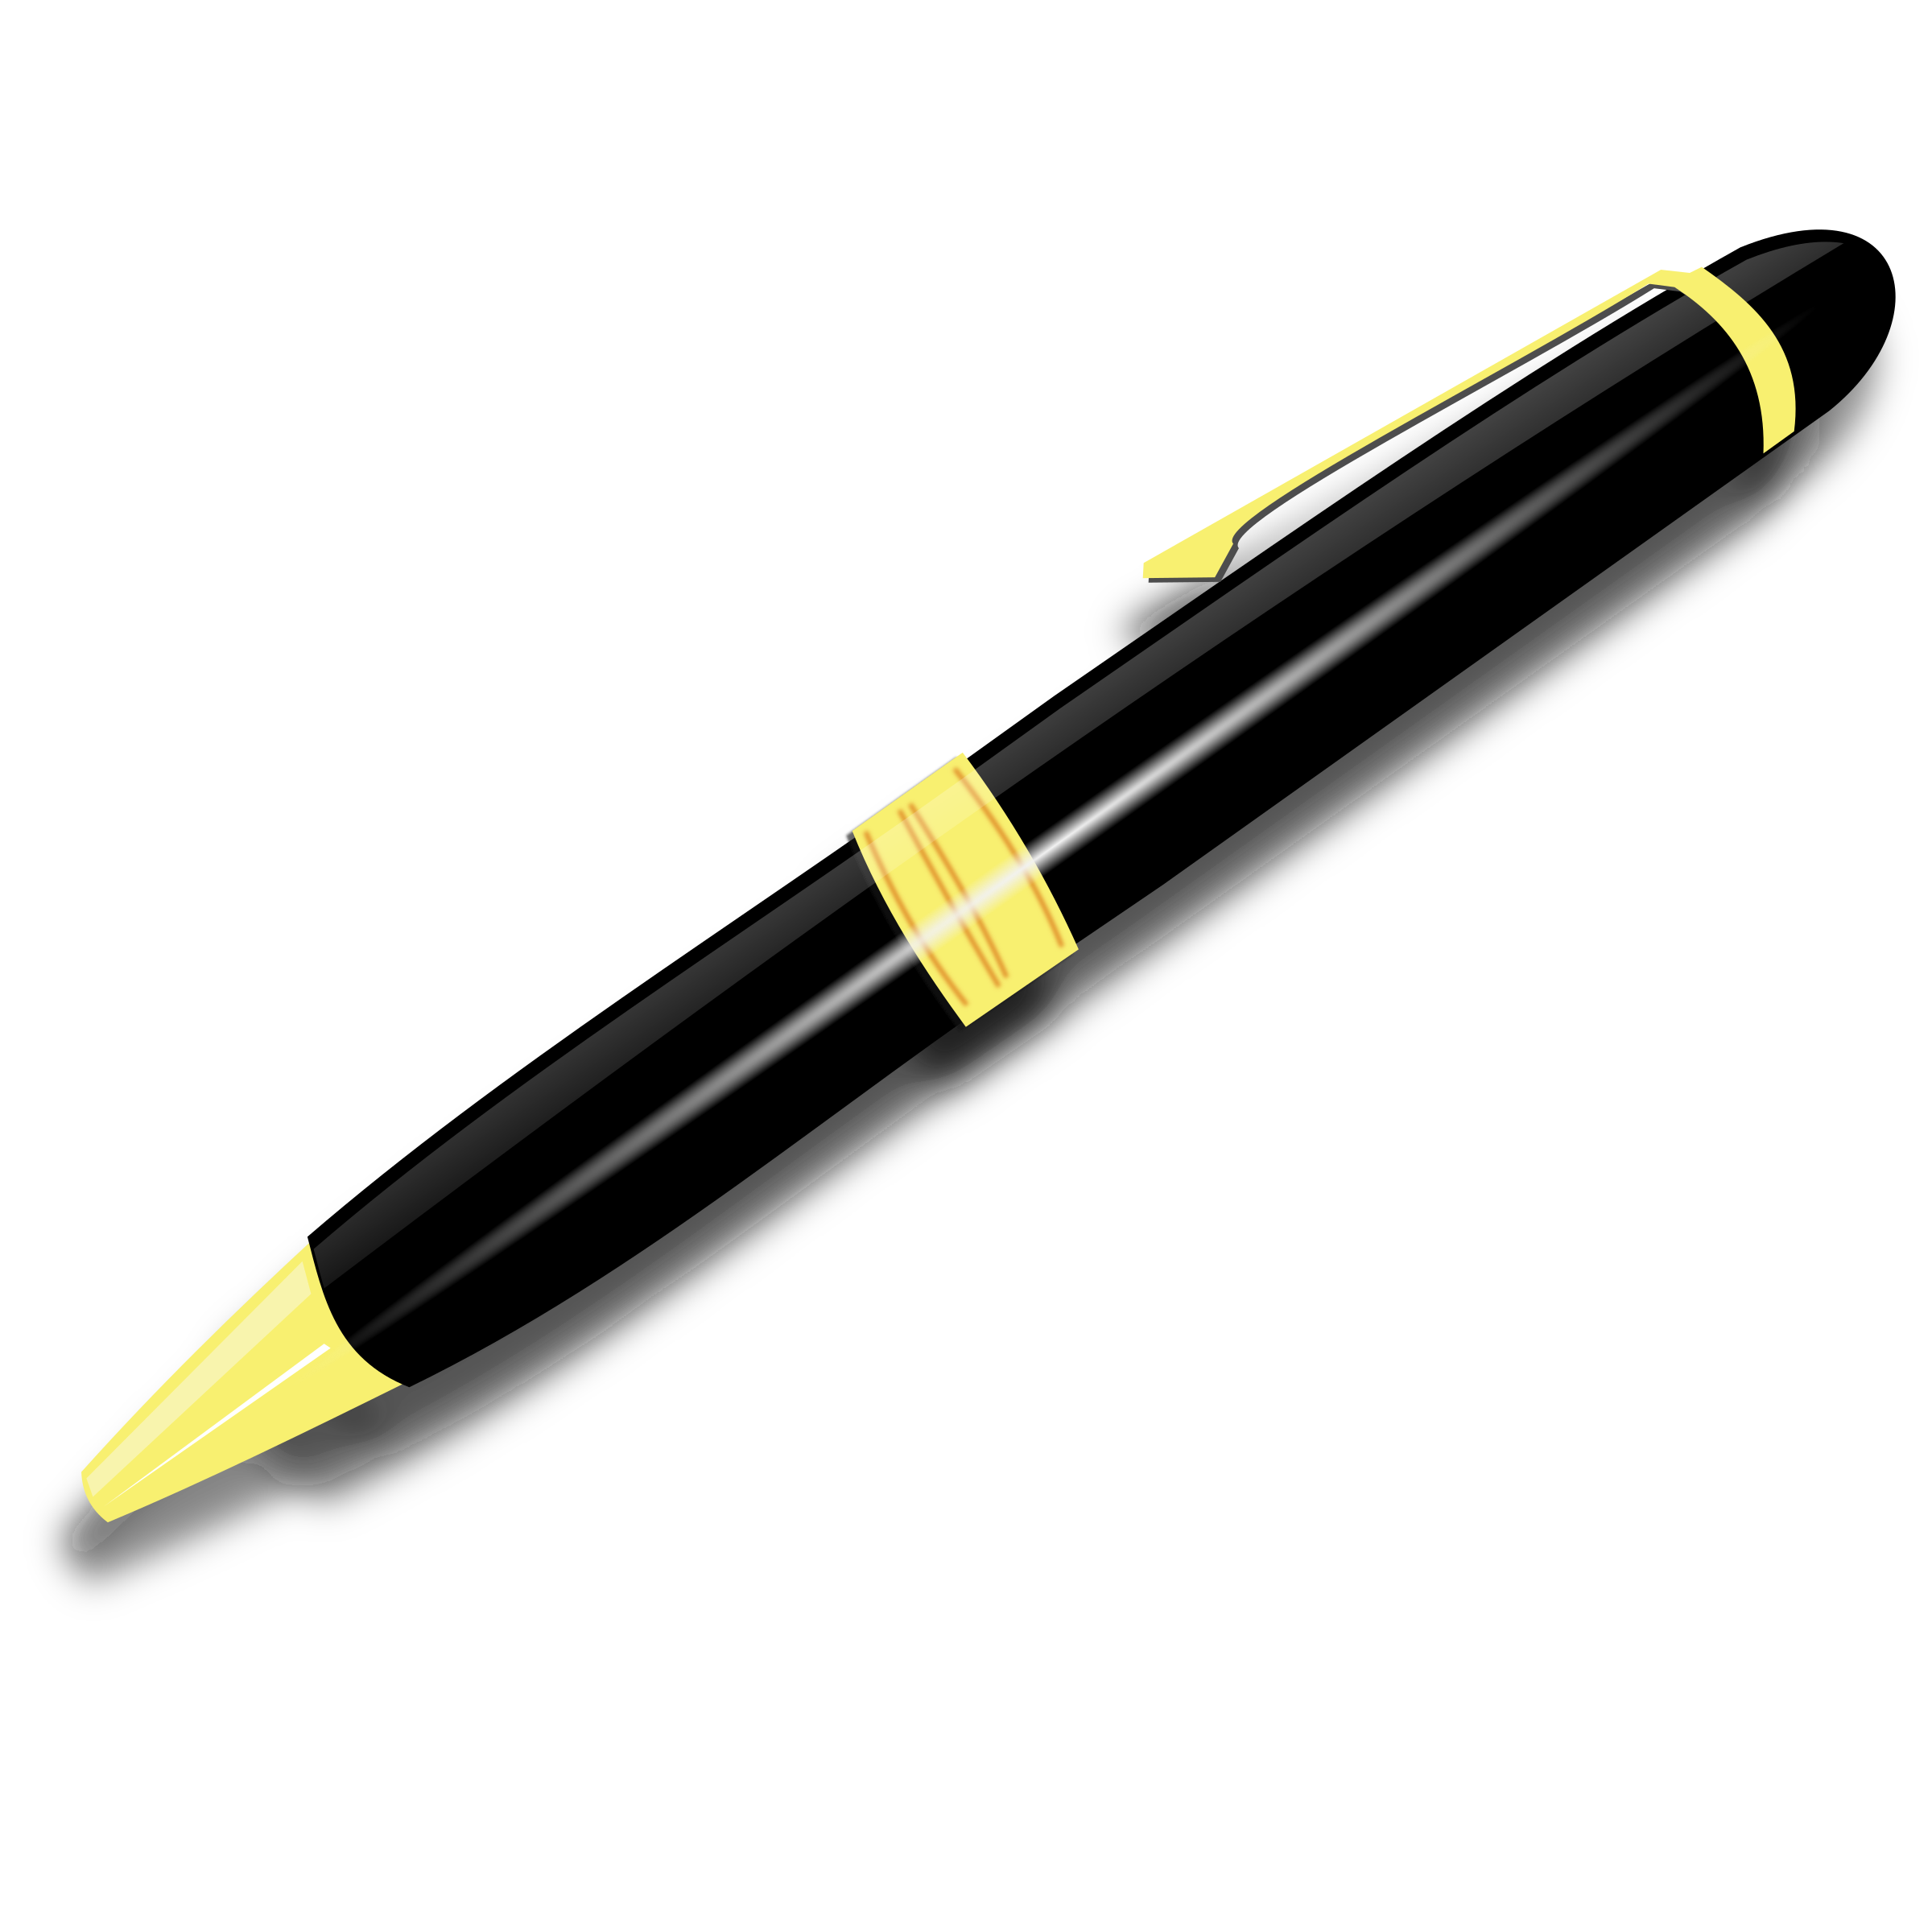 pen picture Drawing pencil - holding pen picture png is about is about thumb, hand model,  hand, nail, finger drawing pencil - holding pen picture supports png you can.